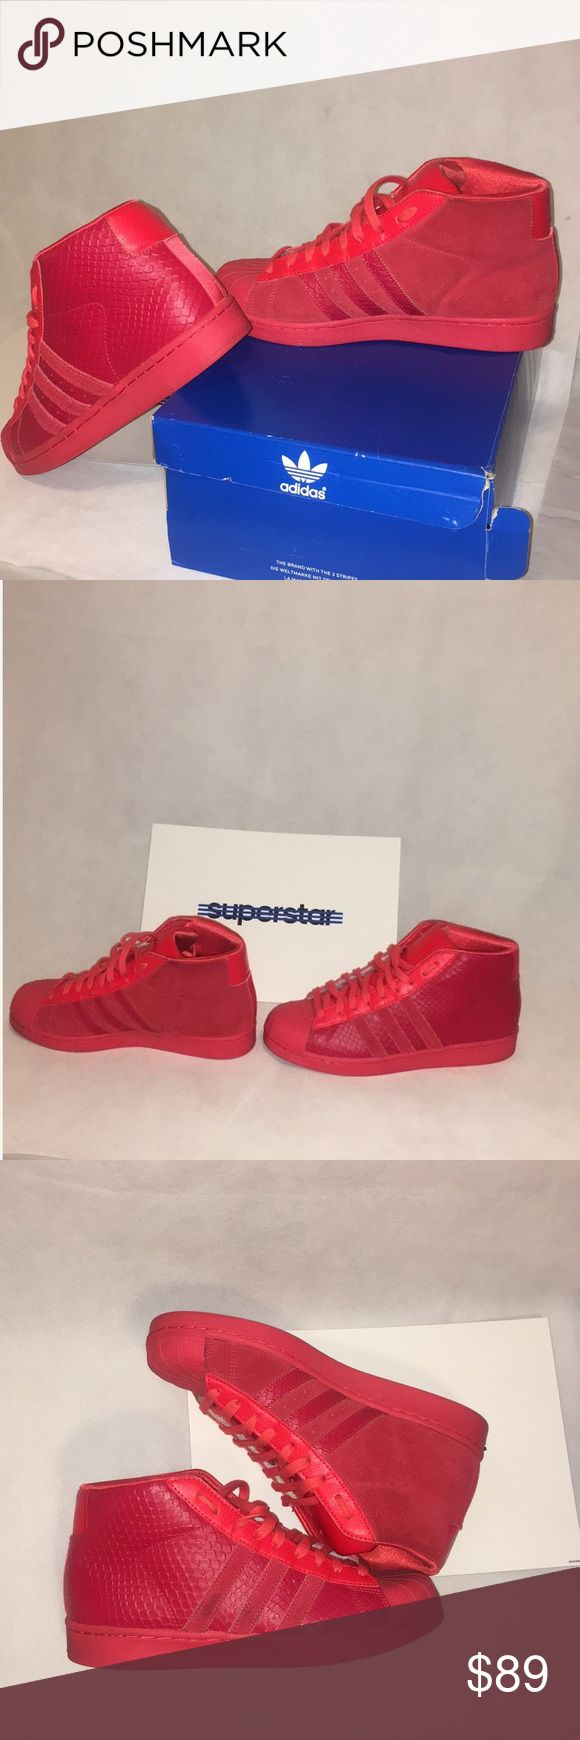 So Fresh! High Top Pro model Adidas Red/Red   So Fresh, So Clean Start your 2018  with a pair of unique sneakers!! From top to sole color in red. Minor scuffs on 1 side of the shoe but PRISITINE to say the least. Great for Valentine's Day ❤️. in original box. Ready to ship     Product Description Adidas Pro Model Mens Size: 7 1/2 Color: TOMATO adidas Shoes Sneakers